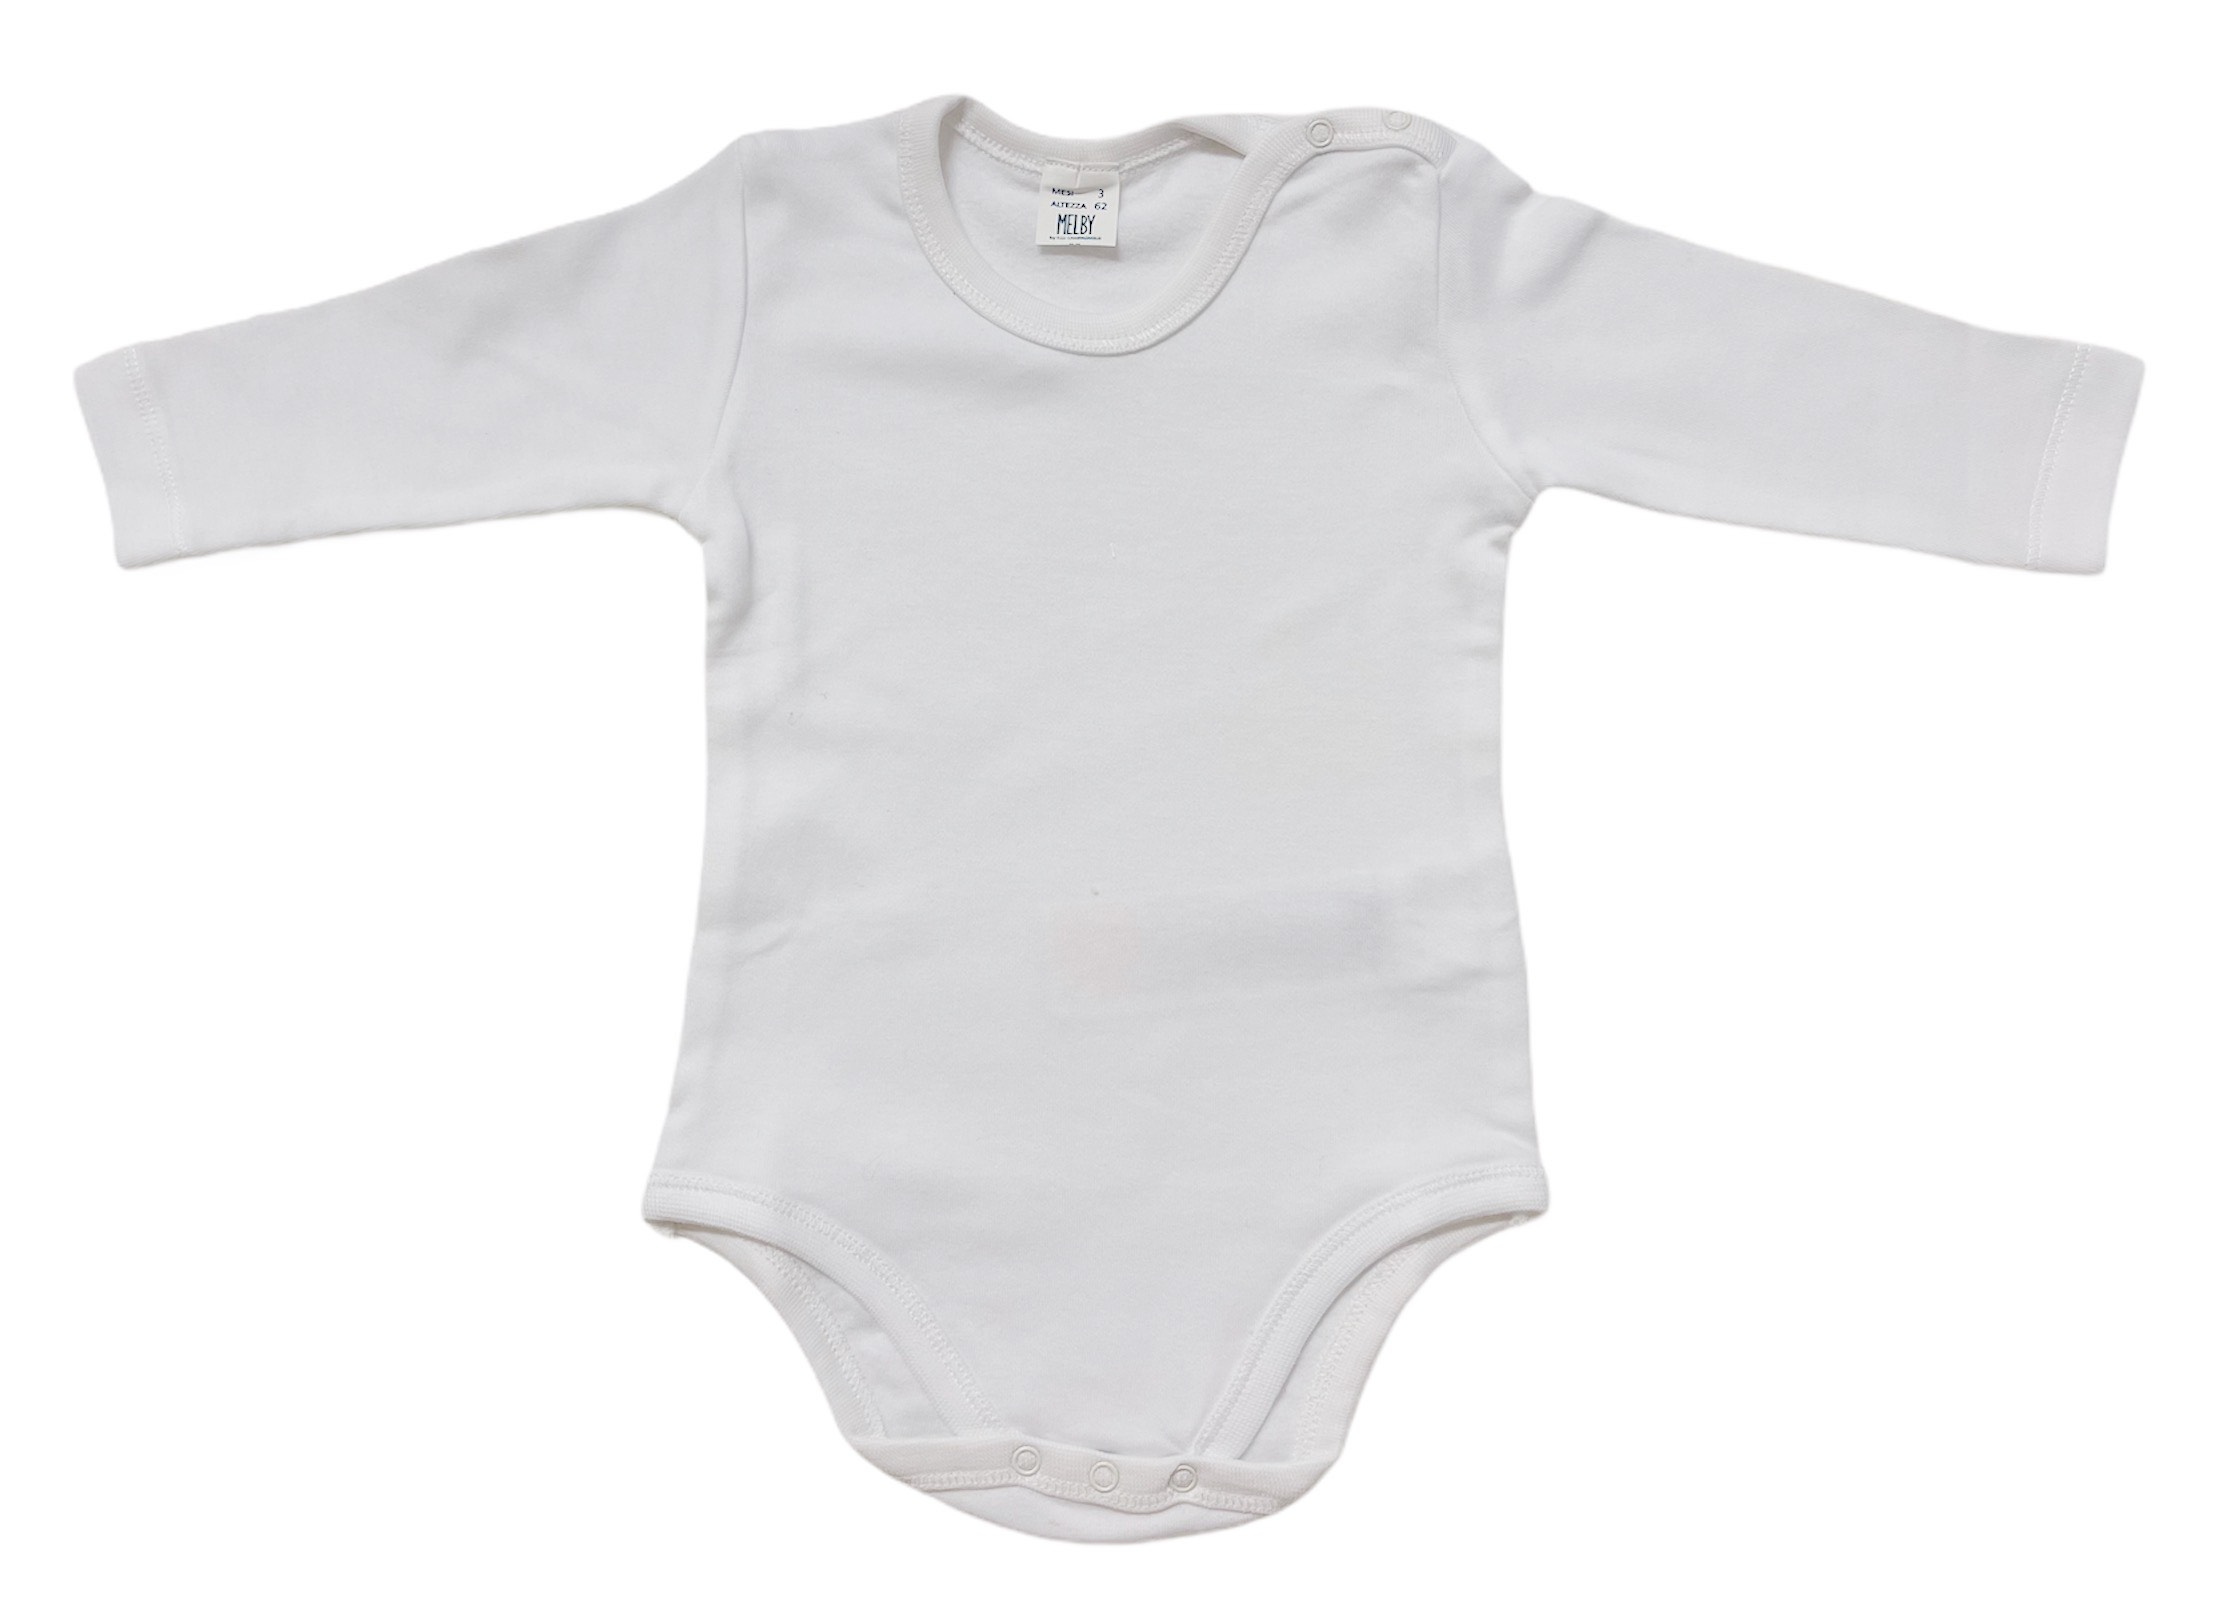 BODY INTIMO M. LUNGHE MELBY 1